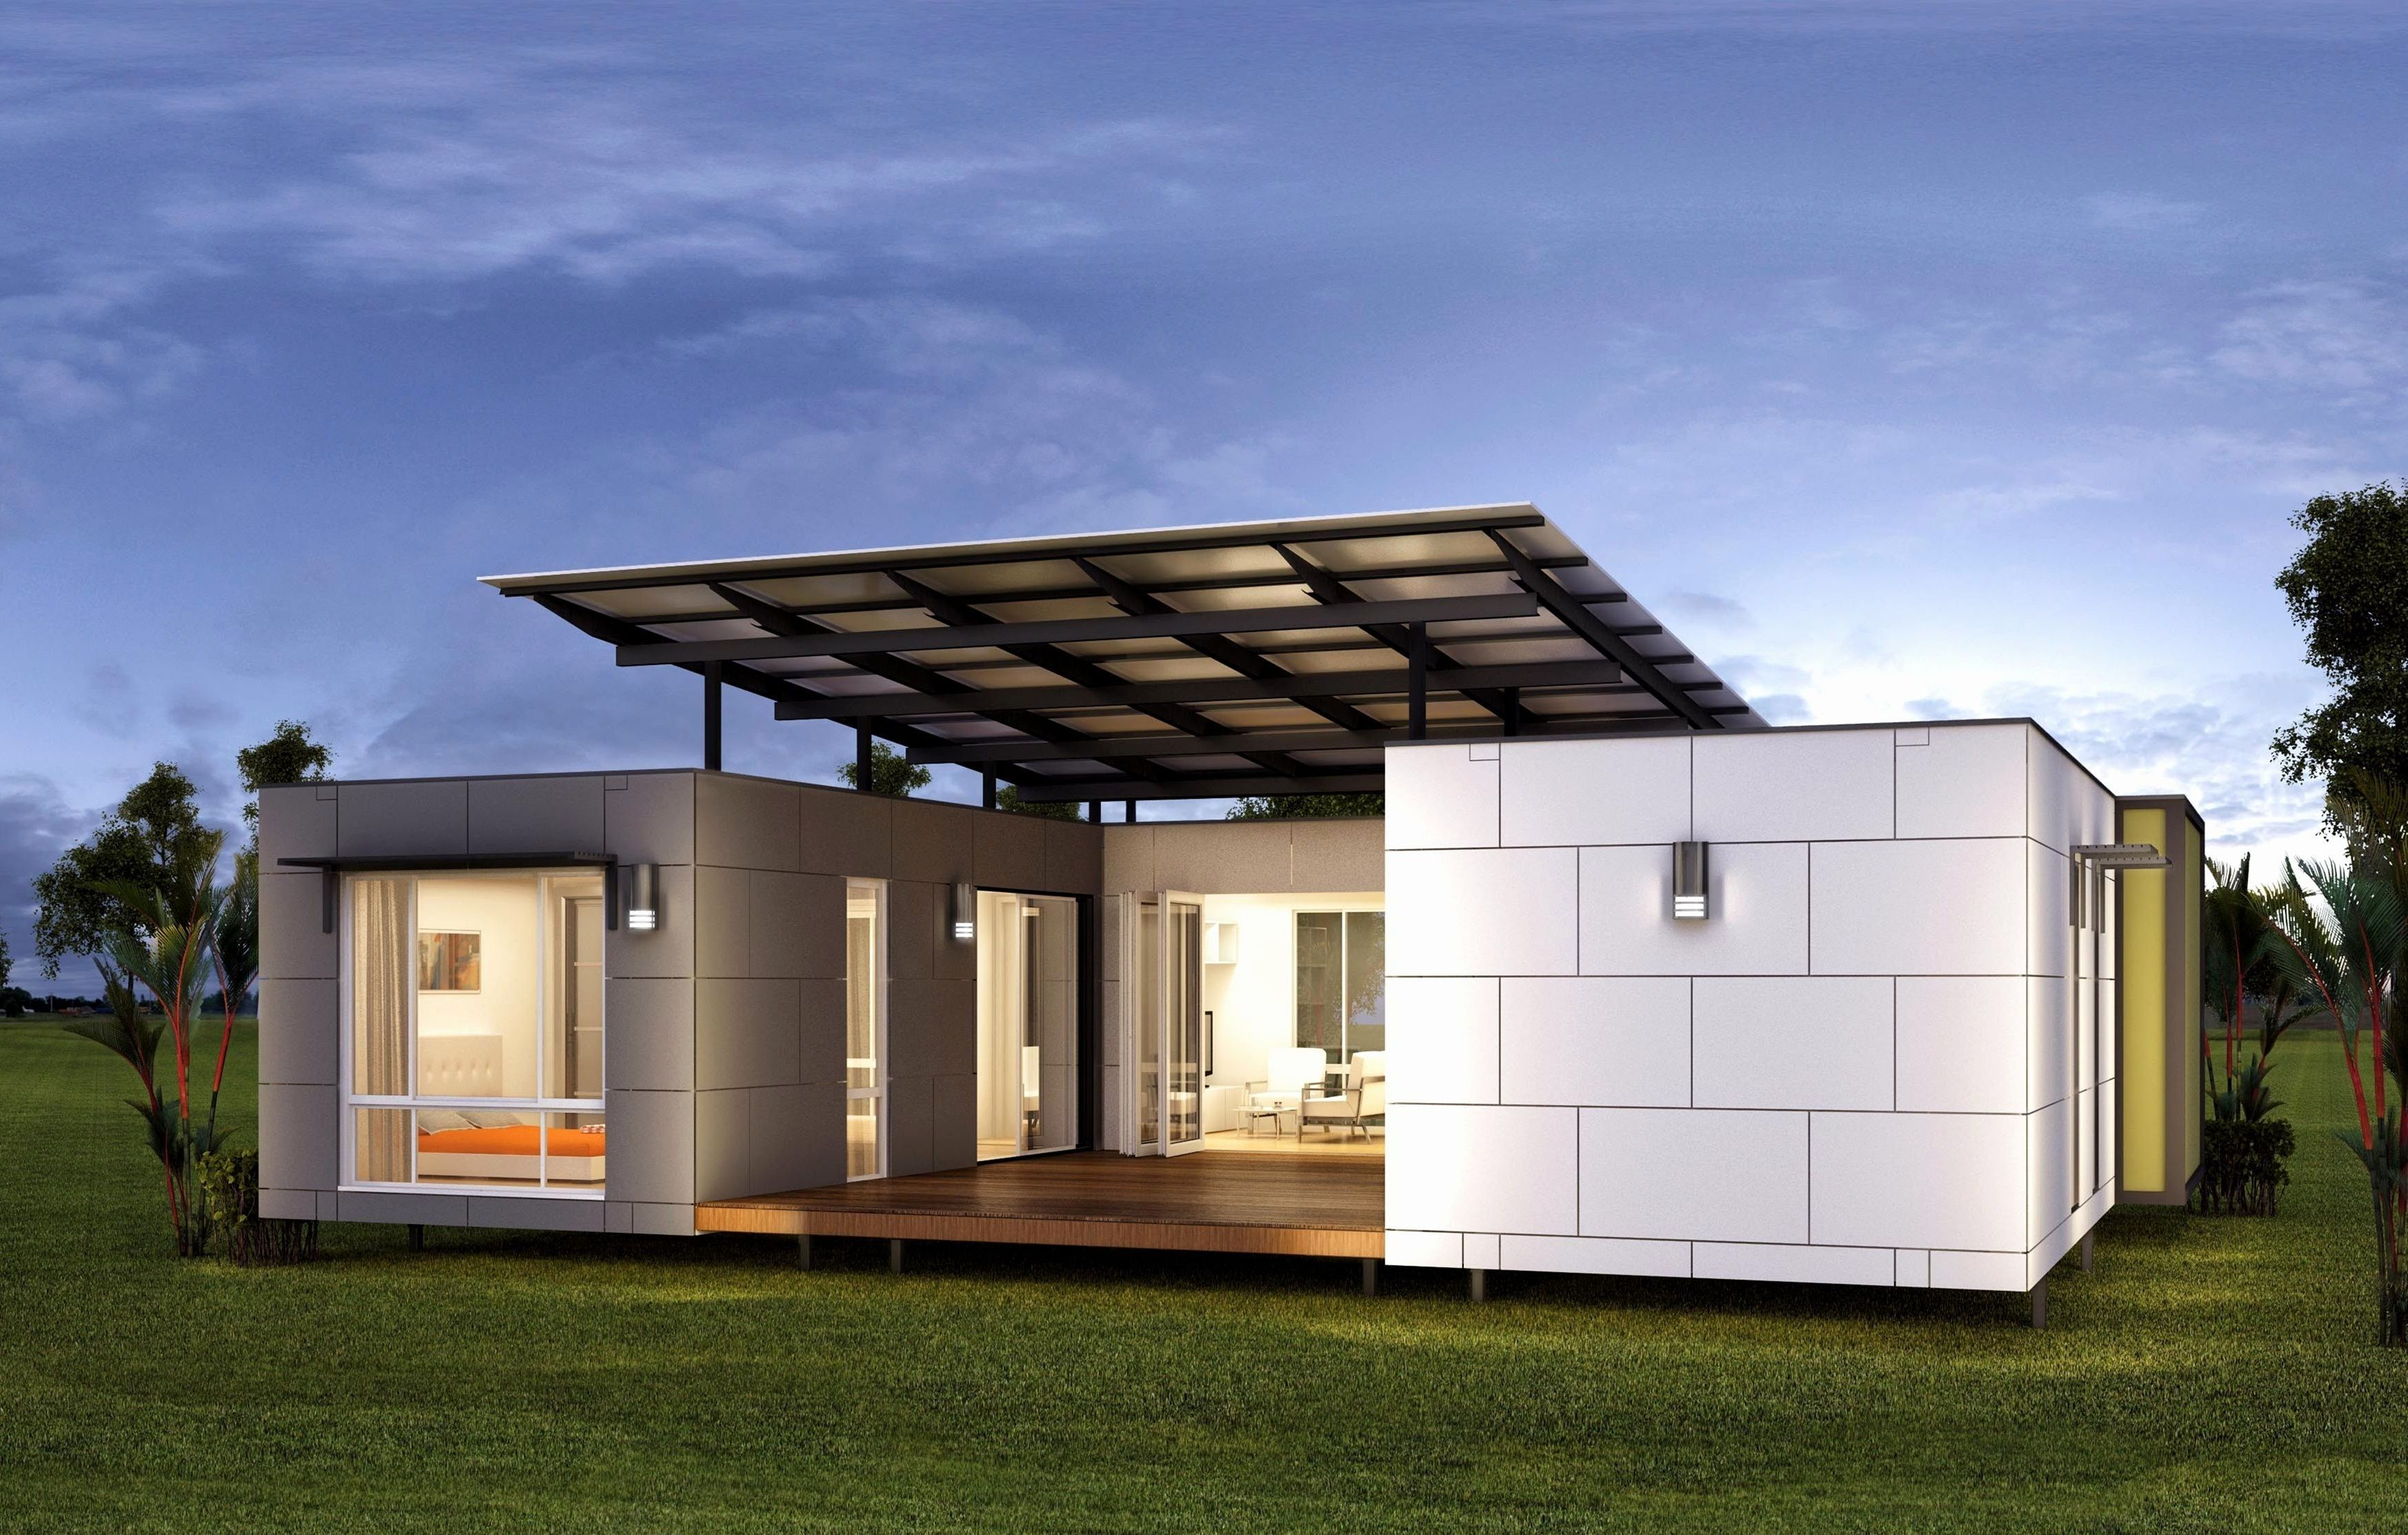 15 Attractive Container House Design Ideas For Inspirations Small Modular Homes Prefab Modular Homes Container House